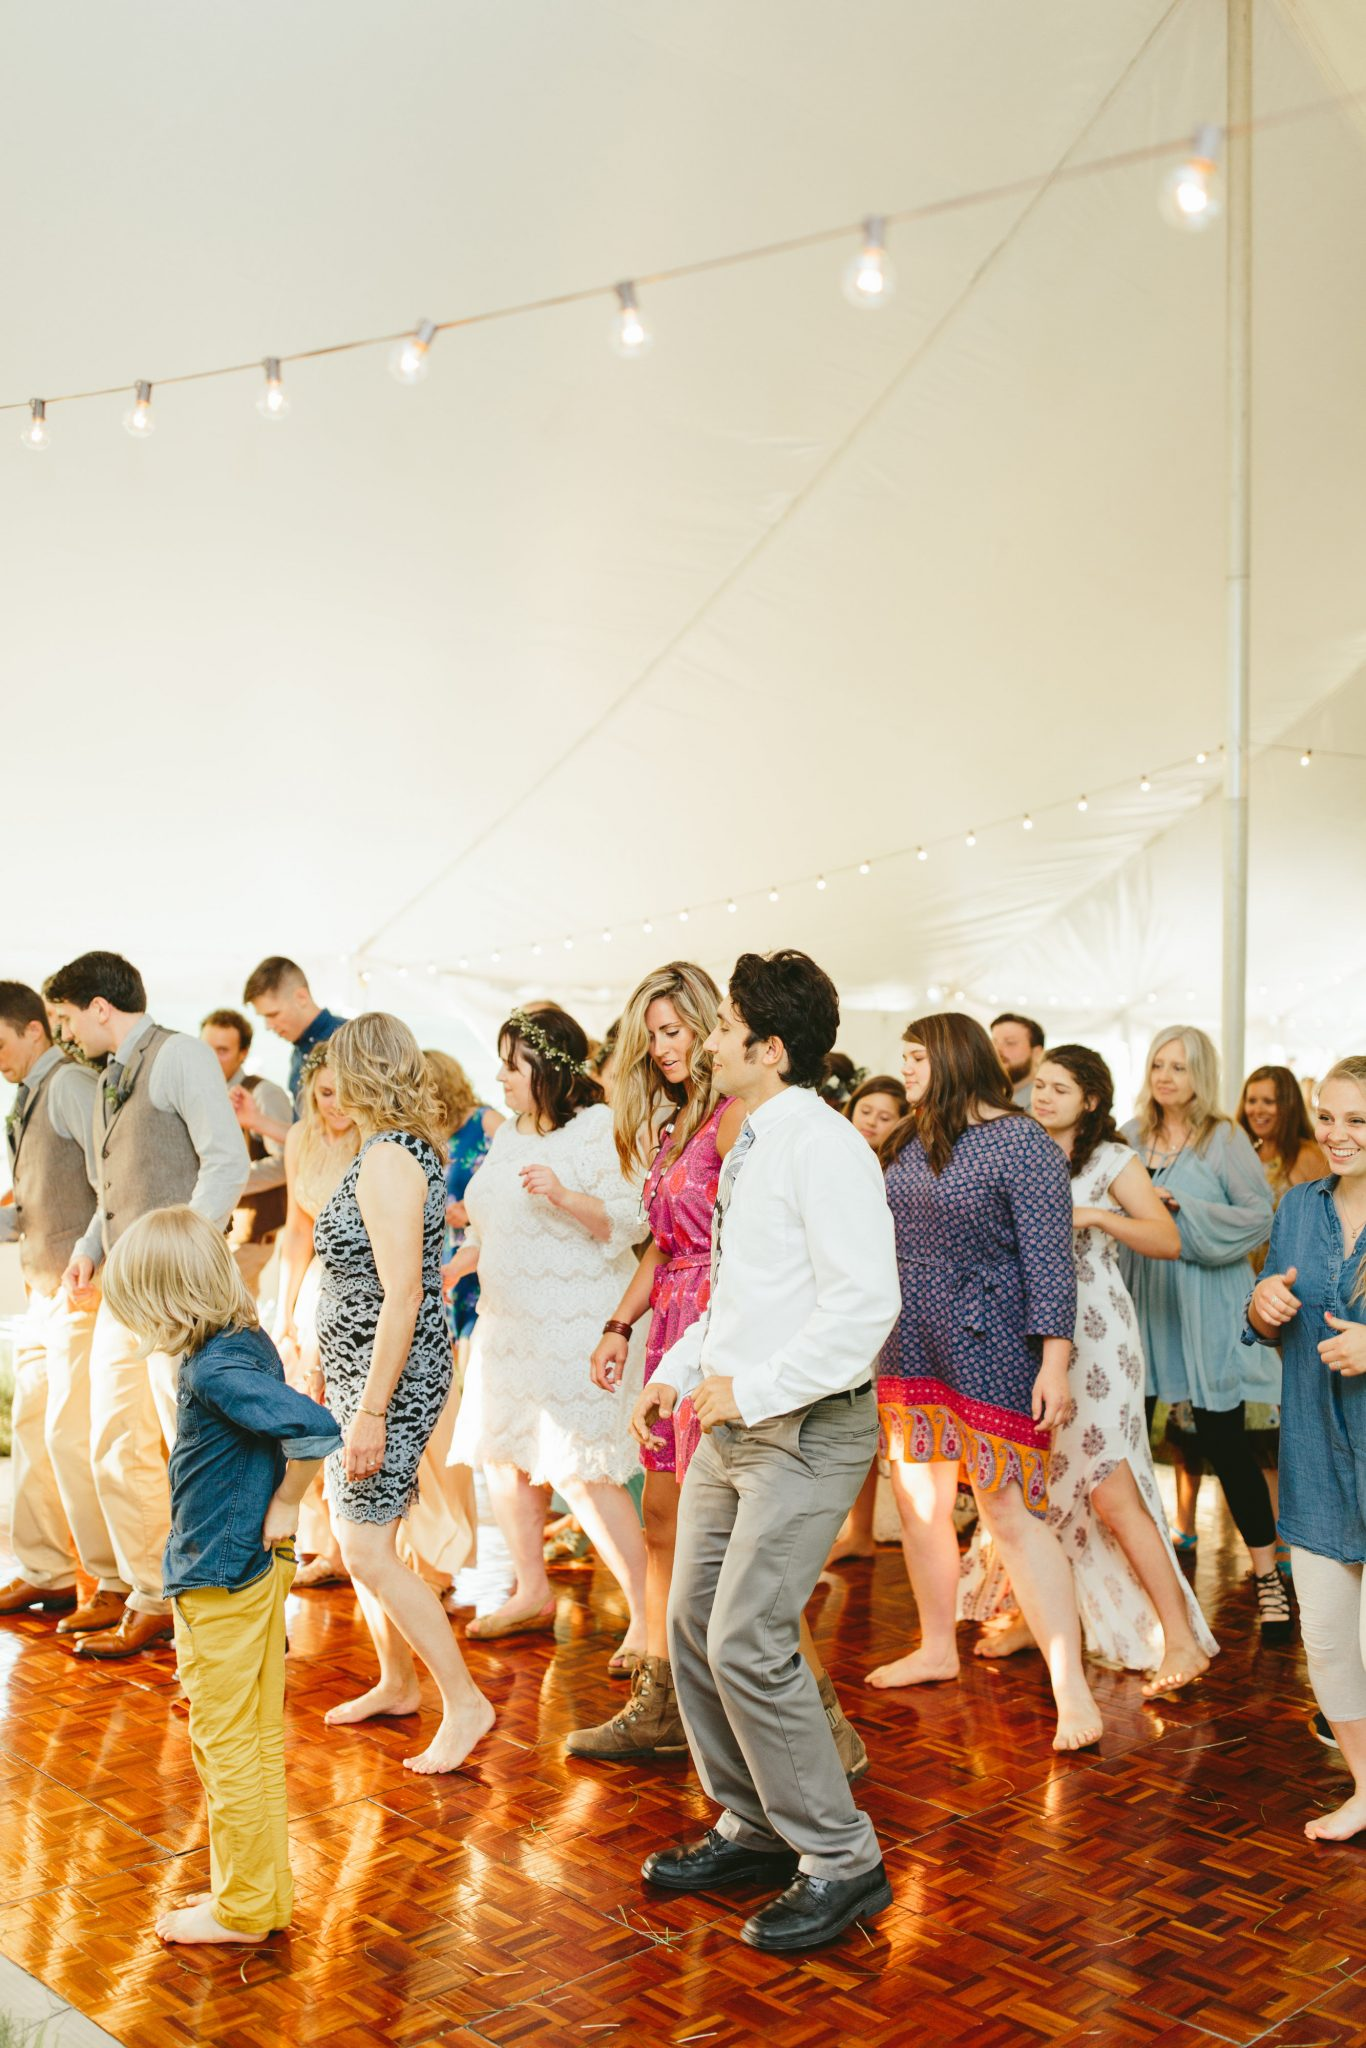 outdoor wedding reception, wedding reception tent inspiration, outdoor wedding reception inspiration, backyard wedding reception, string lit wedding reception, best man speech inspiration, vintage inspired wedding reception, gold wedding accents,wedding reception tent inspiration, backyard wedding reception ides, outdoor wedding reception, string lit wedding reception, minimalistic reception decor, unique wedding reception decor, vintage inspired wedding decor, unique wedding plates, simple wedding decoration, outdoor wedding ceremony, barn wedding, reception tent,philadelphia documentary wedding photographer,brooklyn wedding photography, Brooklyn wedding, Philadelphia wedding photographer, Philadelphia wedding, Brooklyn new york photographer, unique wedding inspiration, fun wedding photos, romantic wedding, destination wedding photographer, wedding photography inspiration,barn wedding ideas, barn wedding, unique barn wedding inspiration